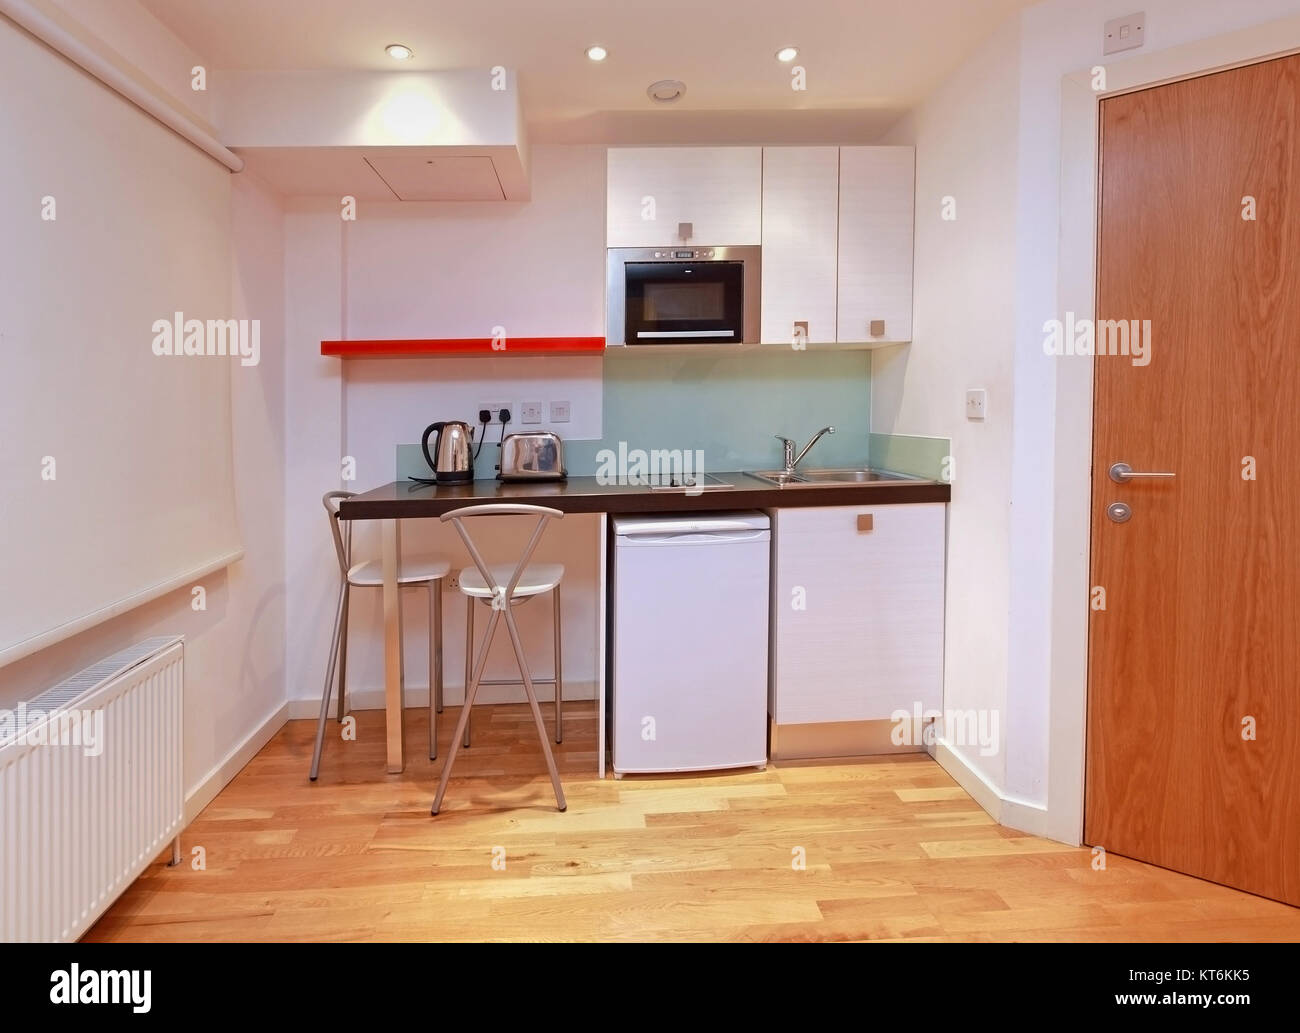 Small Modern Kitchen In Tiny Studio Apartment   Stock Image